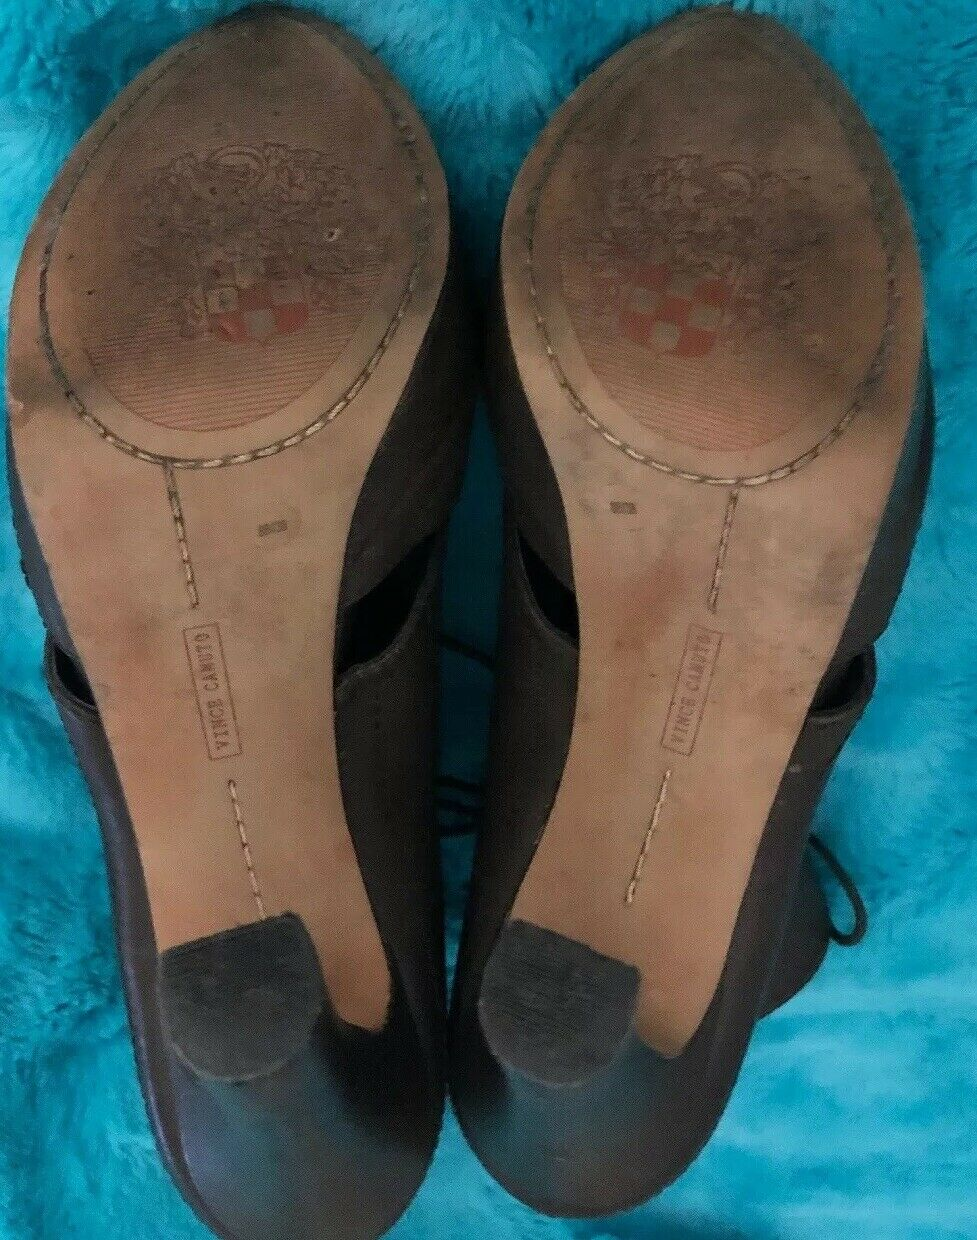 "VINCE CAMUTO CAMUTO CAMUTO Brown Leather-Lace Up-Zip Back-Peep Toe-5""Ankle Boot-Size 8M 38 ef67fd"